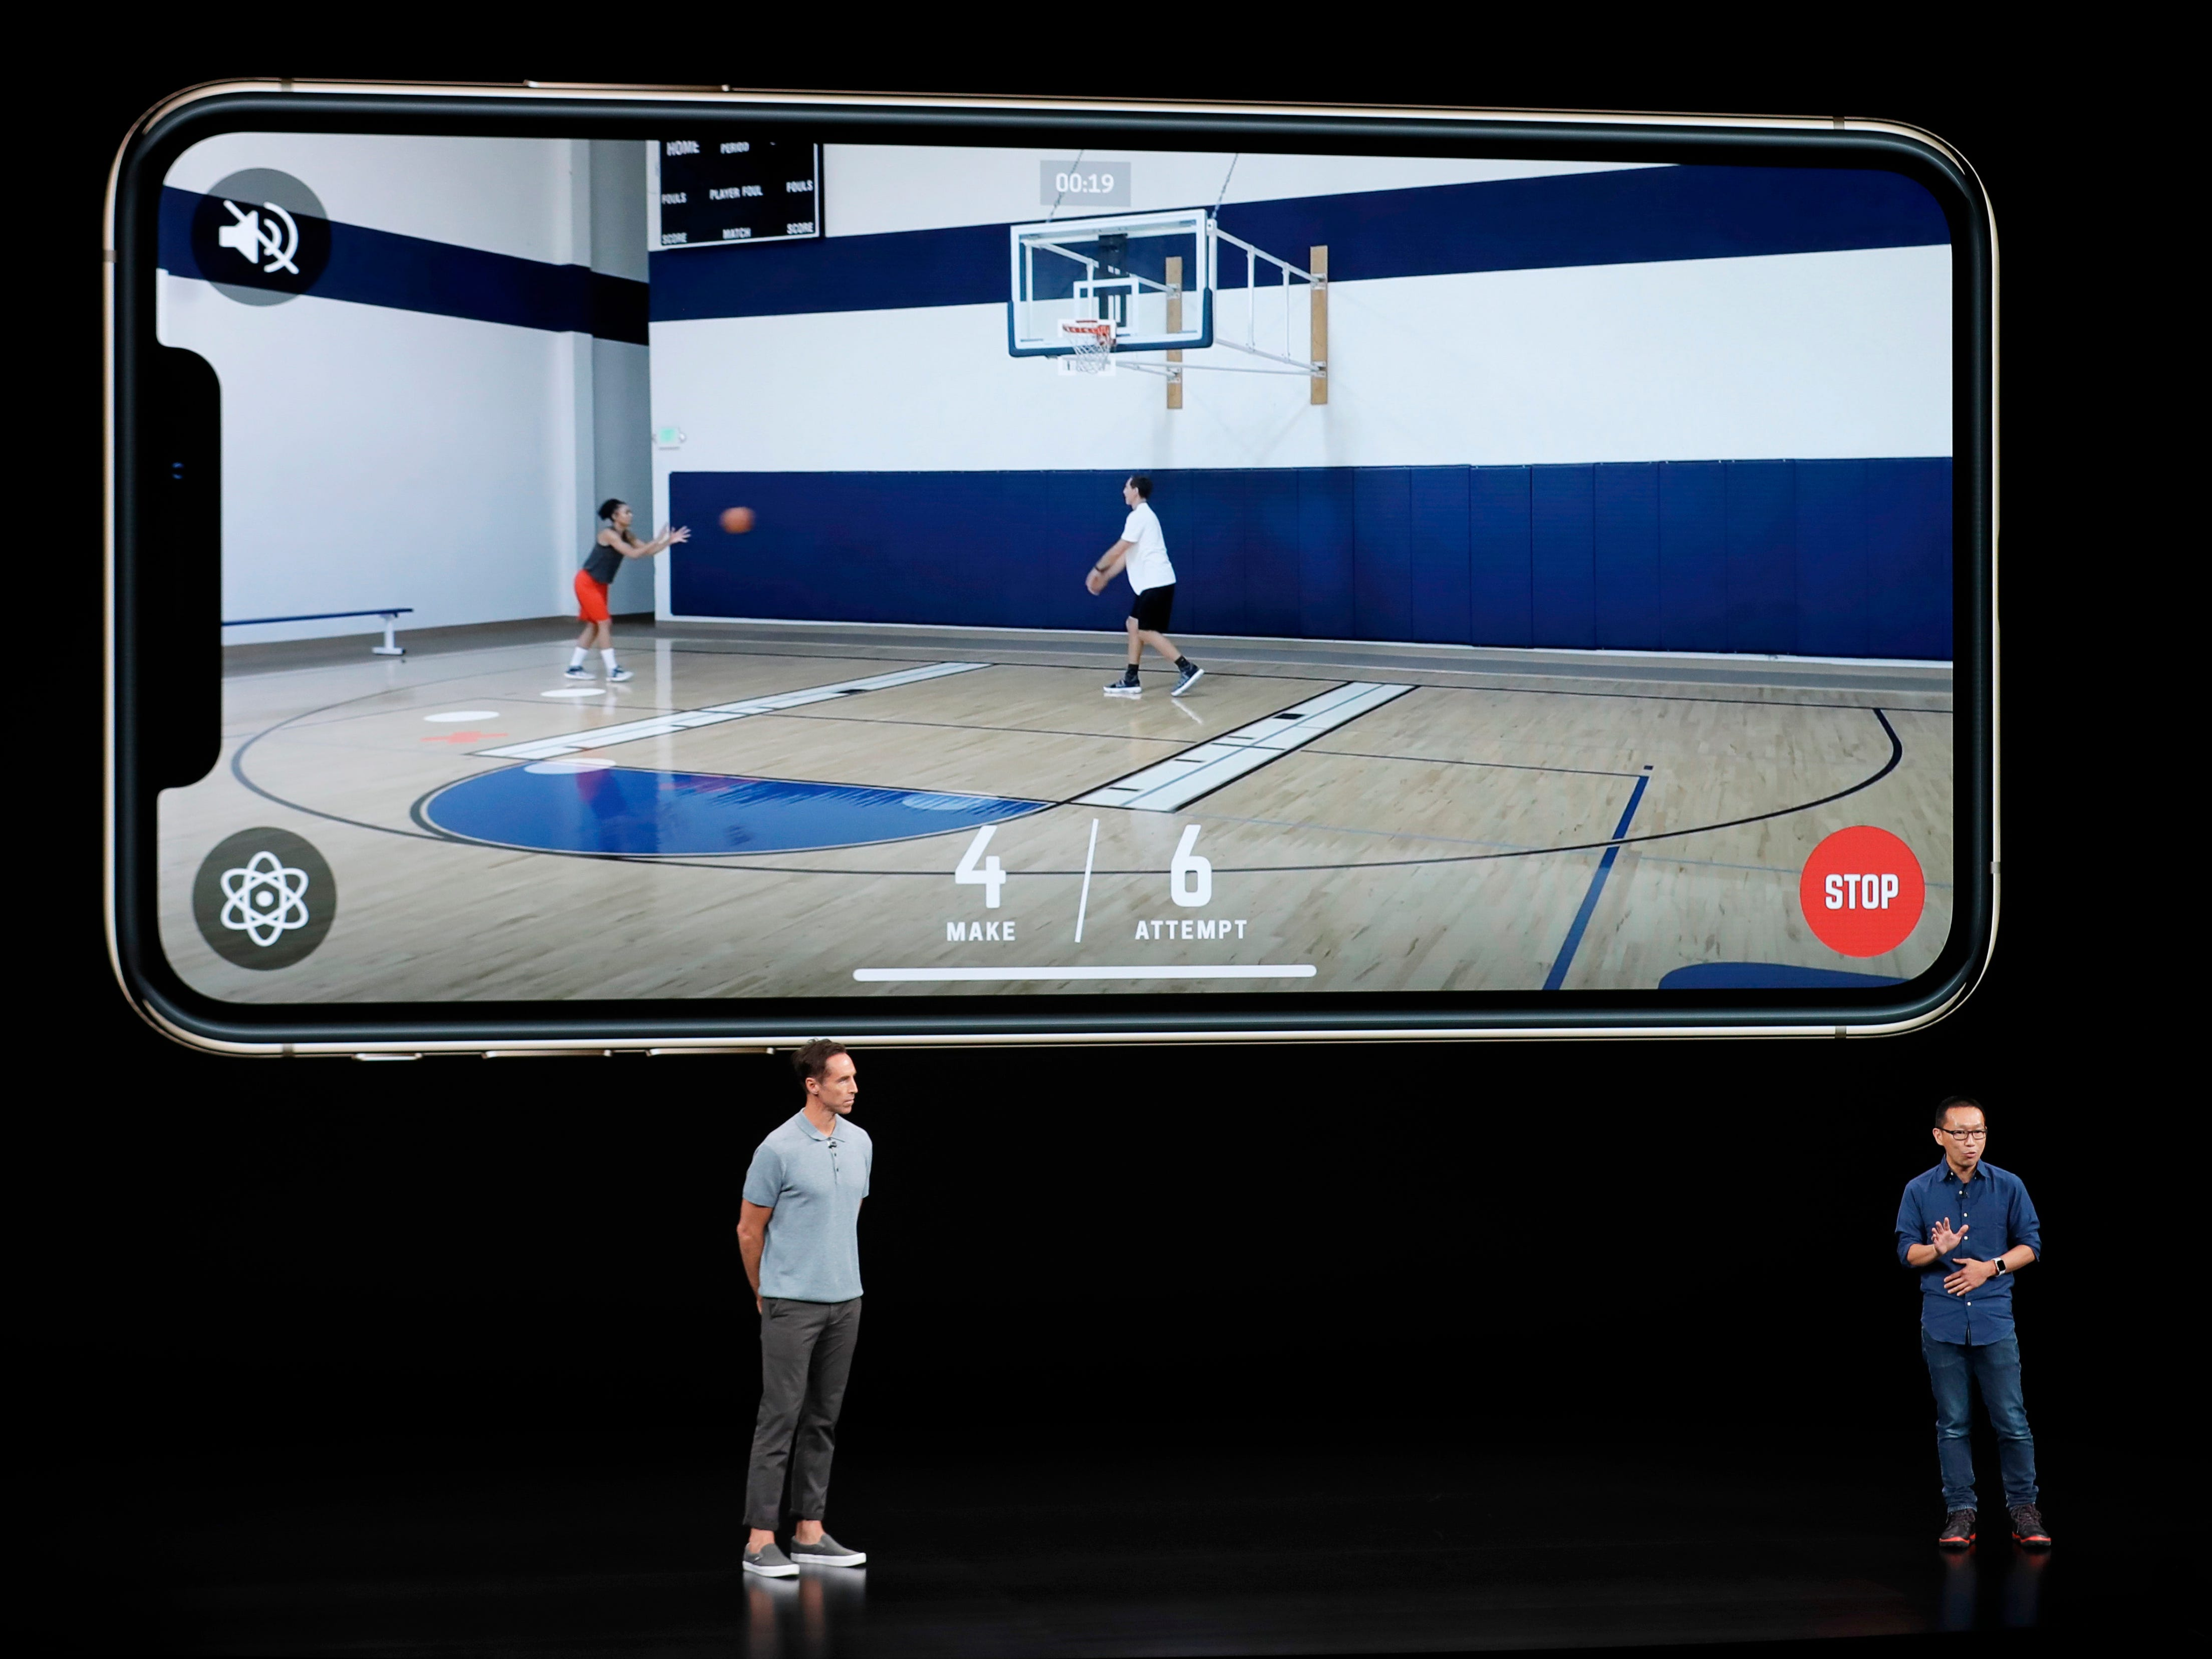 CEO and founder of HomeCourt, David Lee, right, and former NBA player Steve Nash talk about the Apple iPhone XS at the Steve Jobs Theater during an event to announce new Apple products Wednesday, Sept. 12, 2018, in Cupertino, Calif.